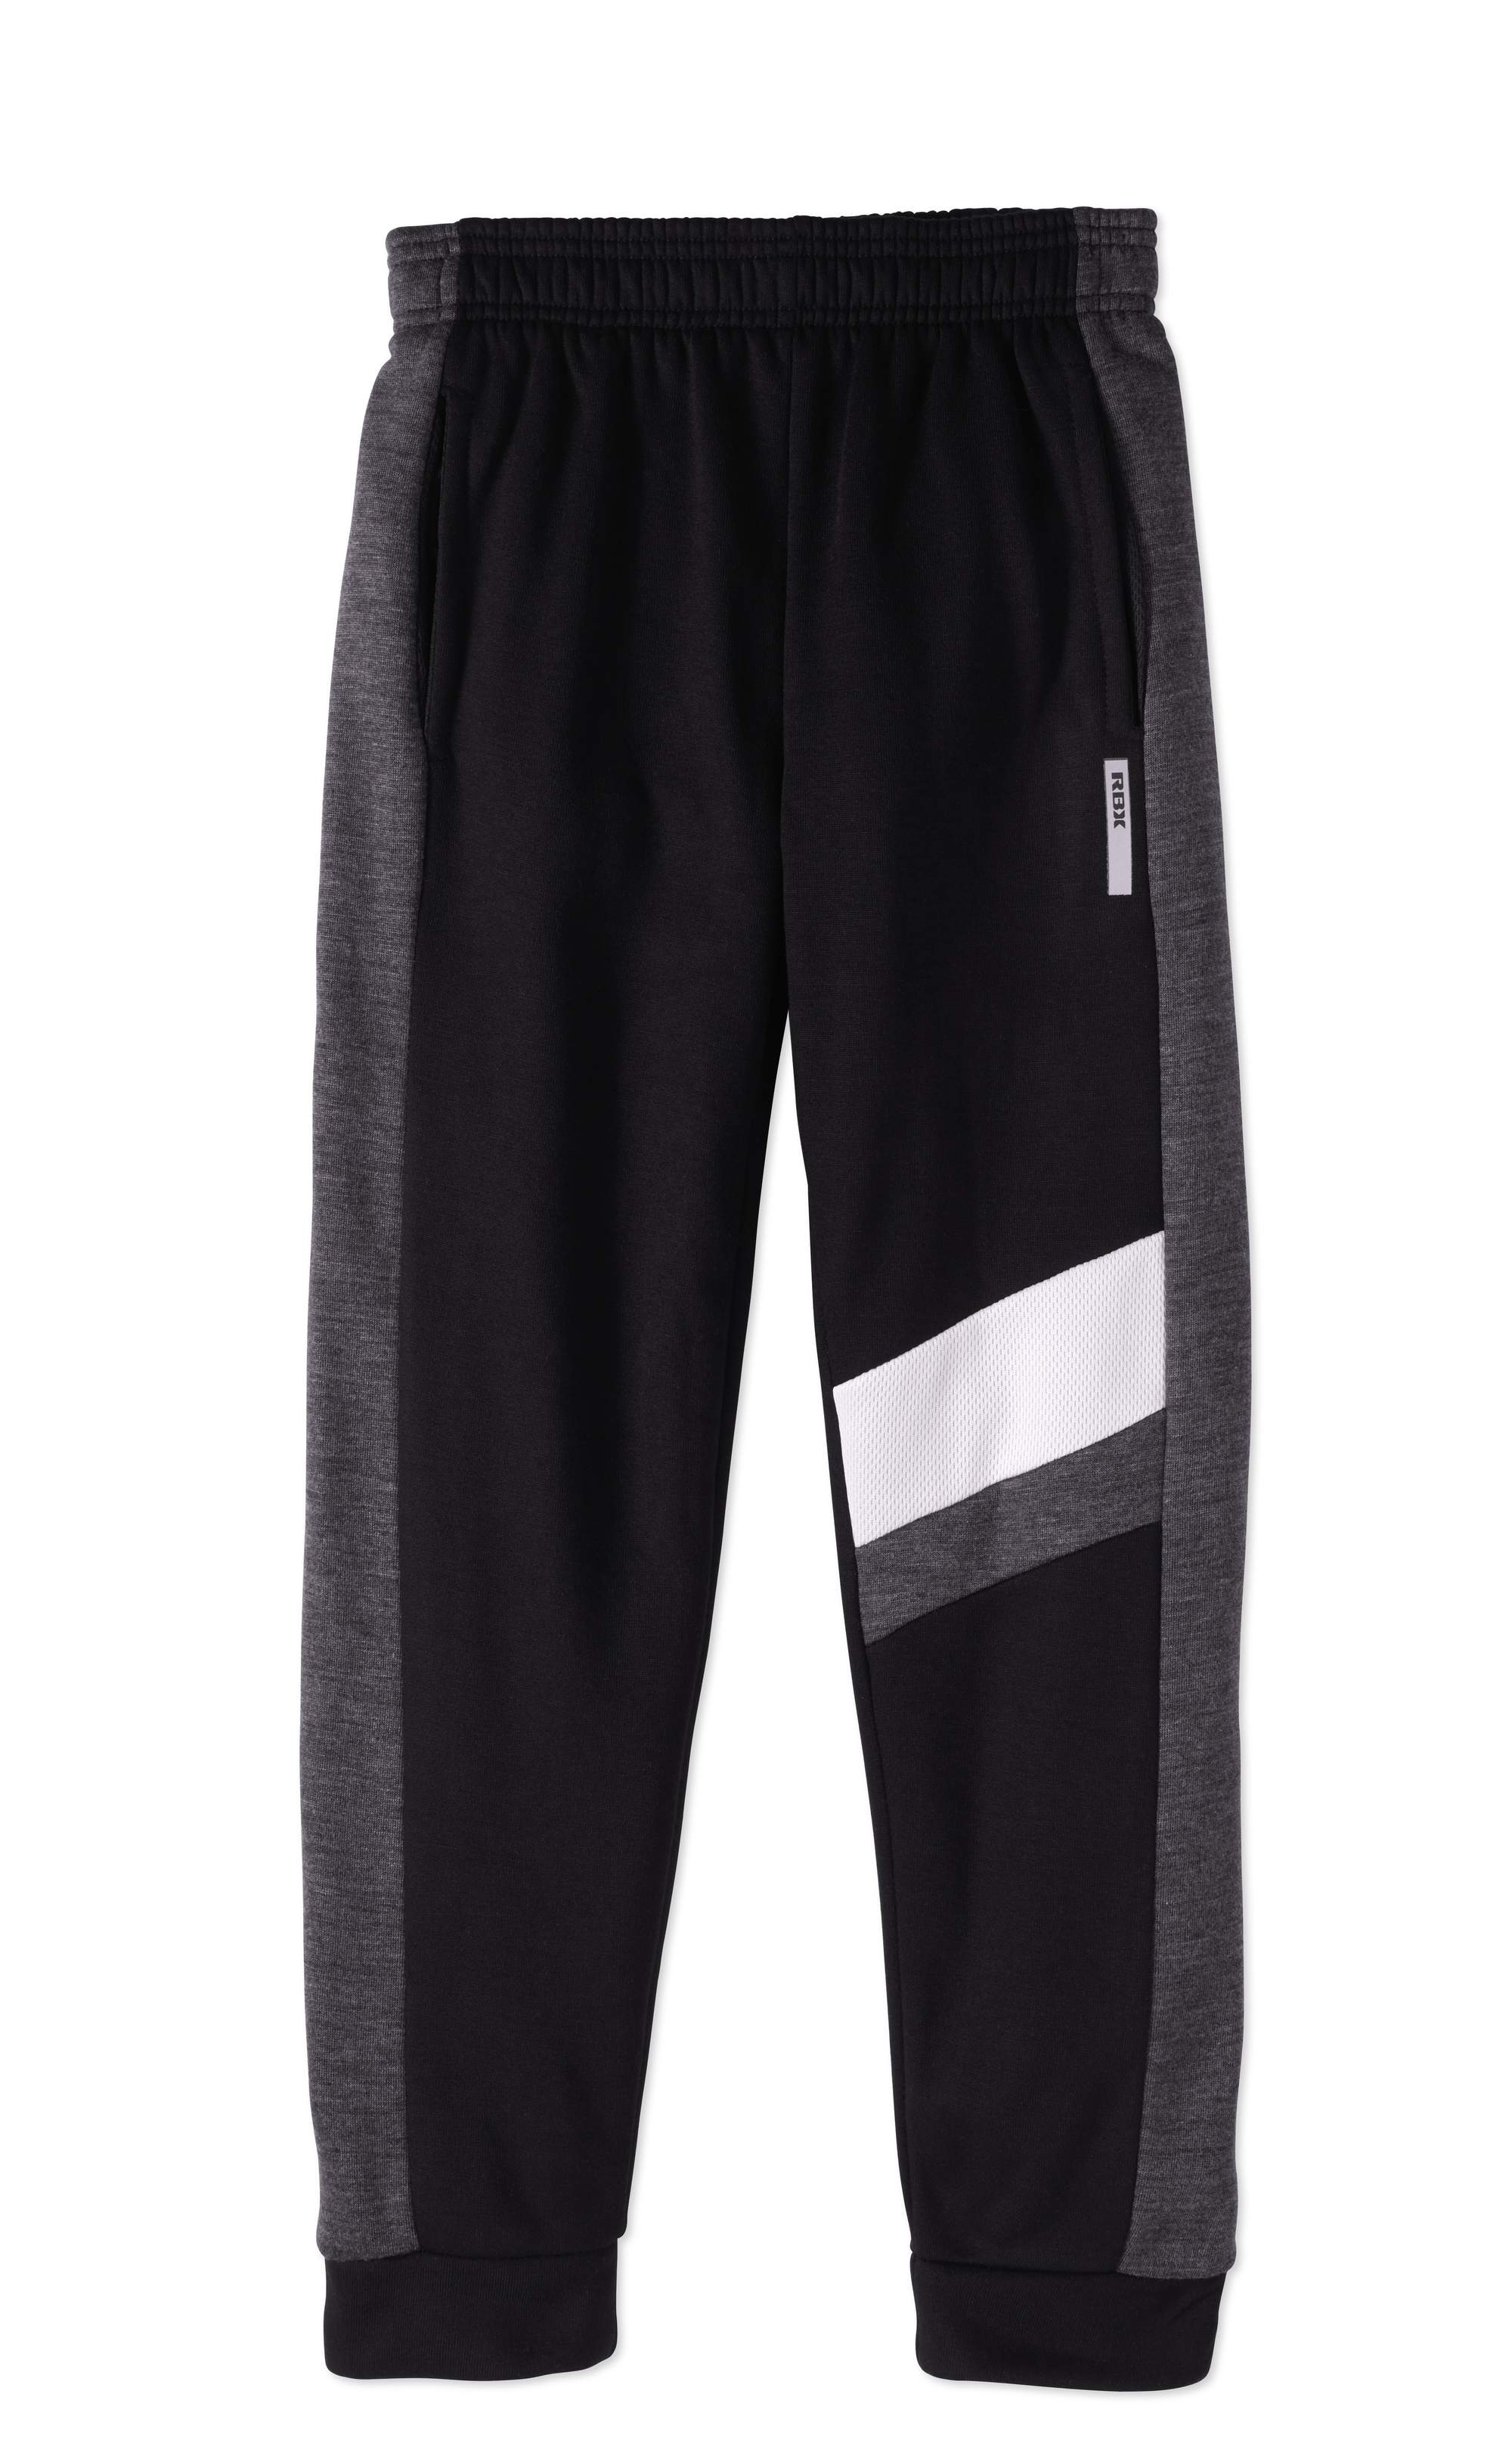 RBX Big Boys' Fleece Pants With Mesh Detail by